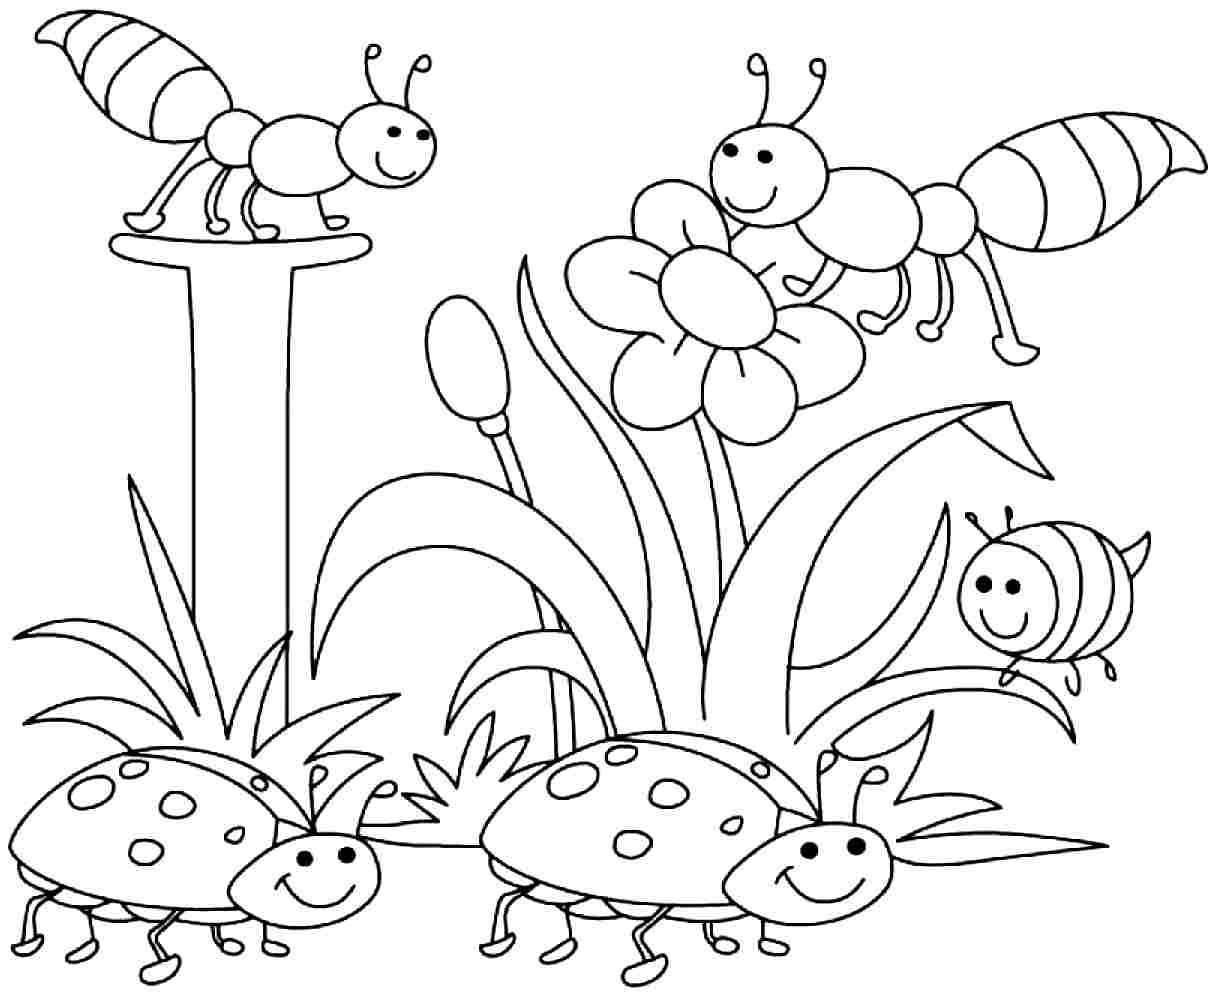 Free coloring pages graduation - Free Printable Coloring Pages Graduation Kindergarten Graduation Colouring Pages Springtime Coloring Pages